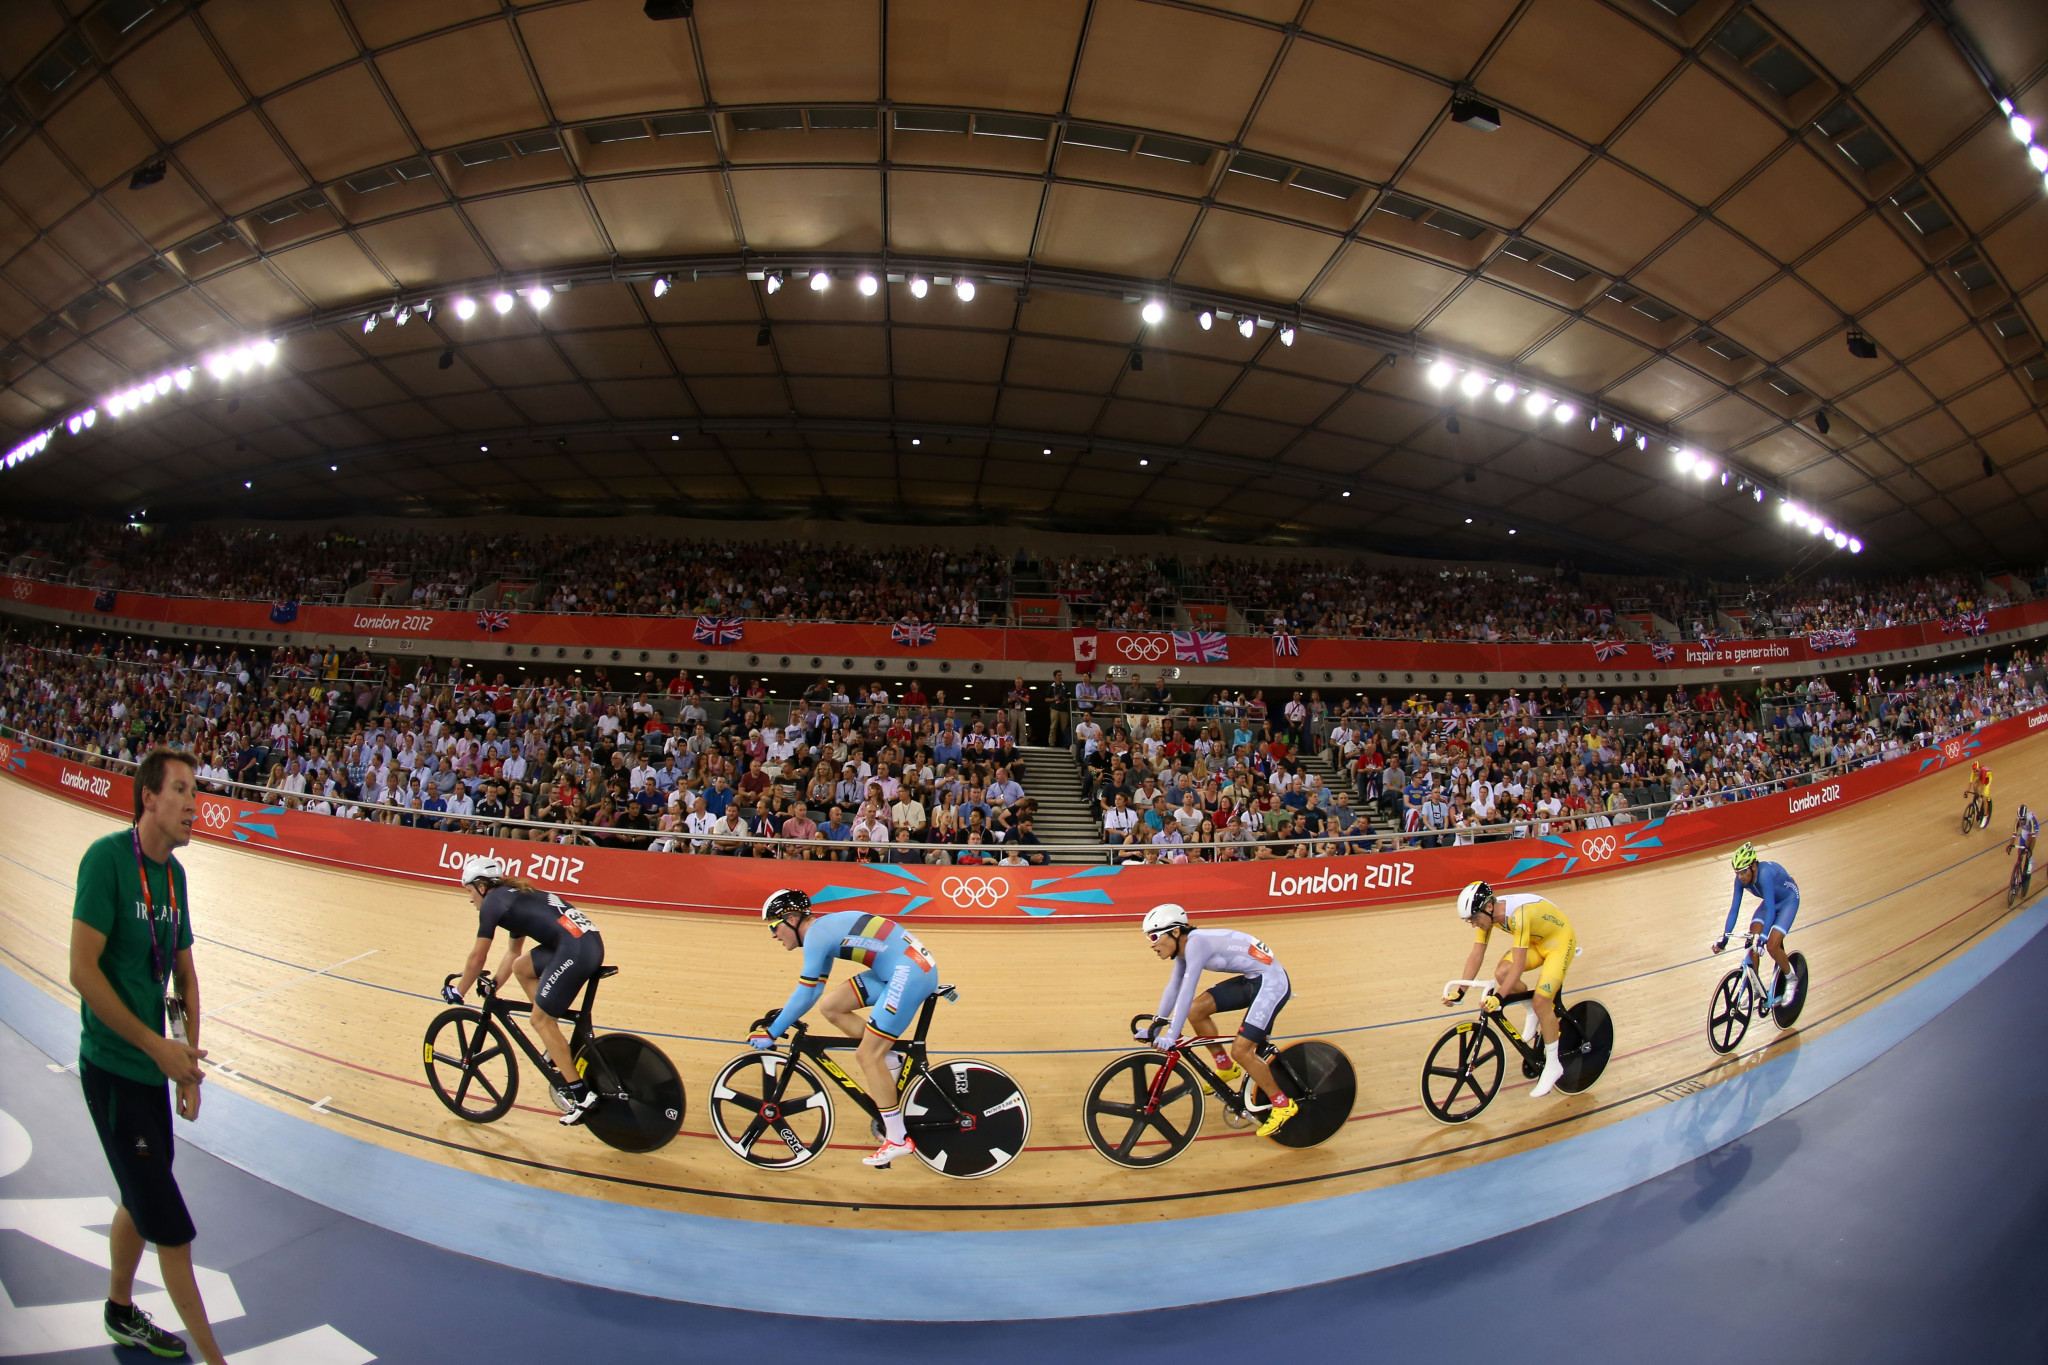 London 2012 should be analysed by the IOC to assess the wider impact of the event ©Getty Images